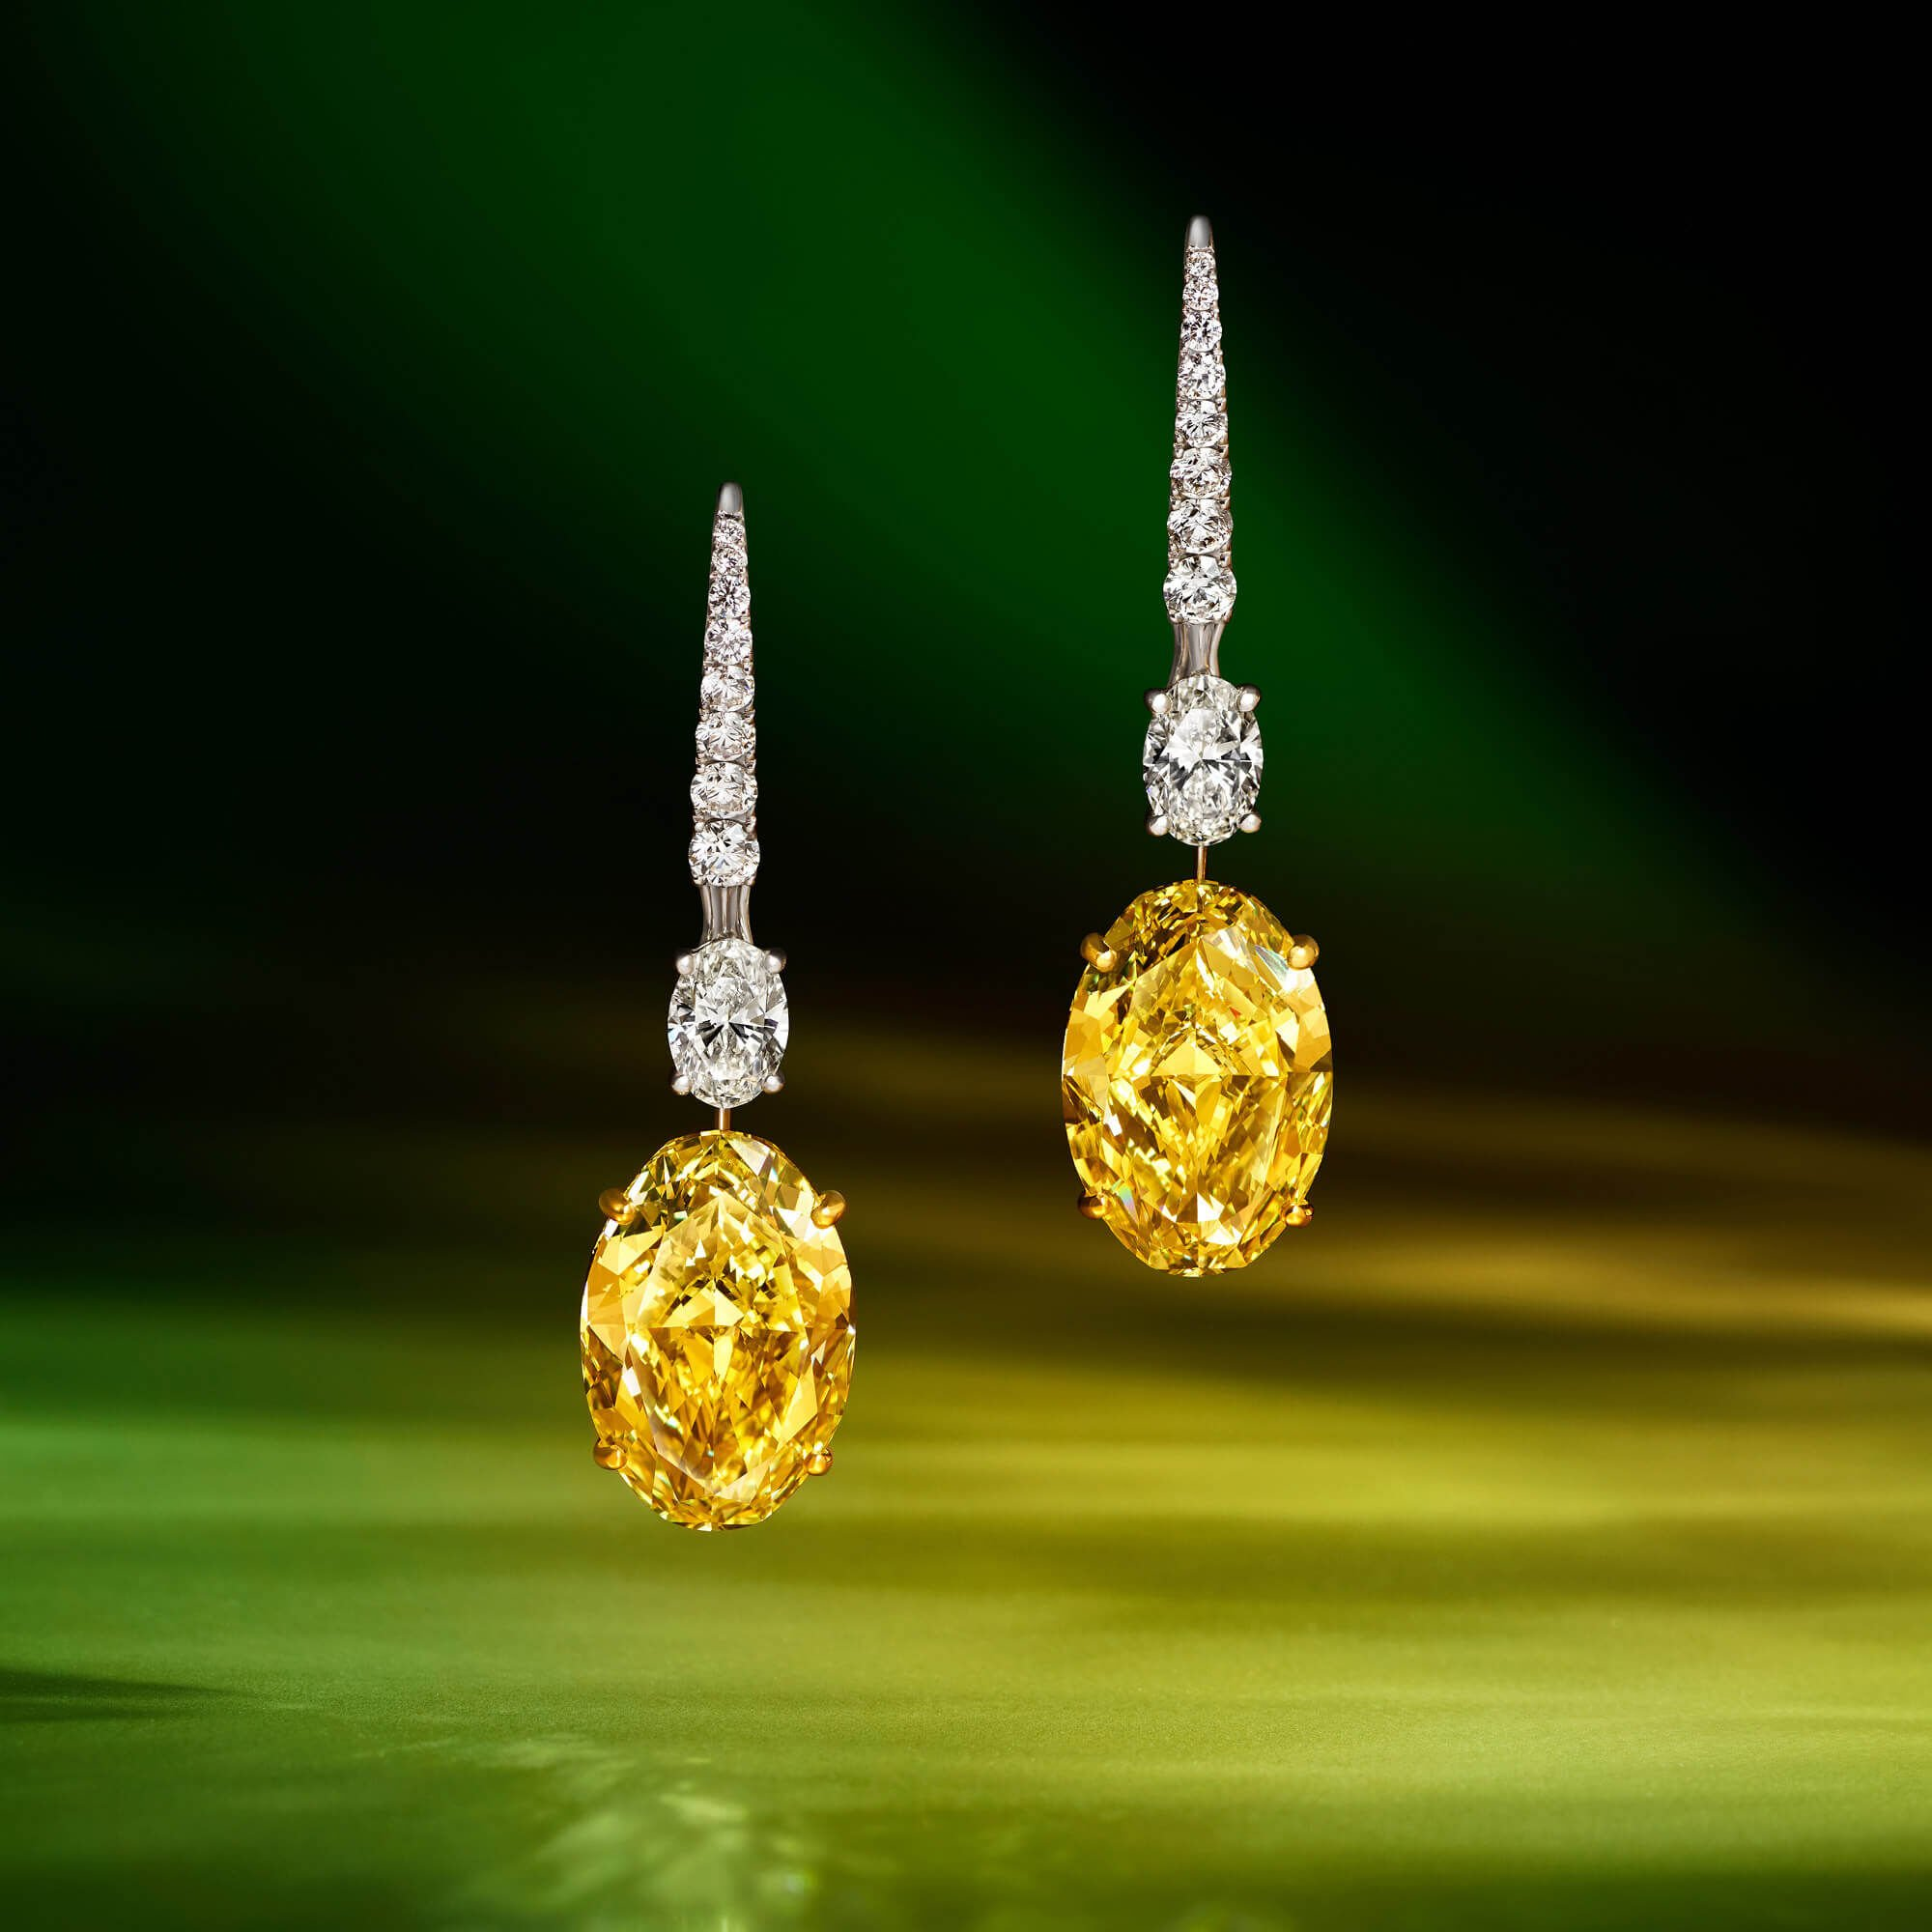 Yellow and White Diamond Earrings by Graff